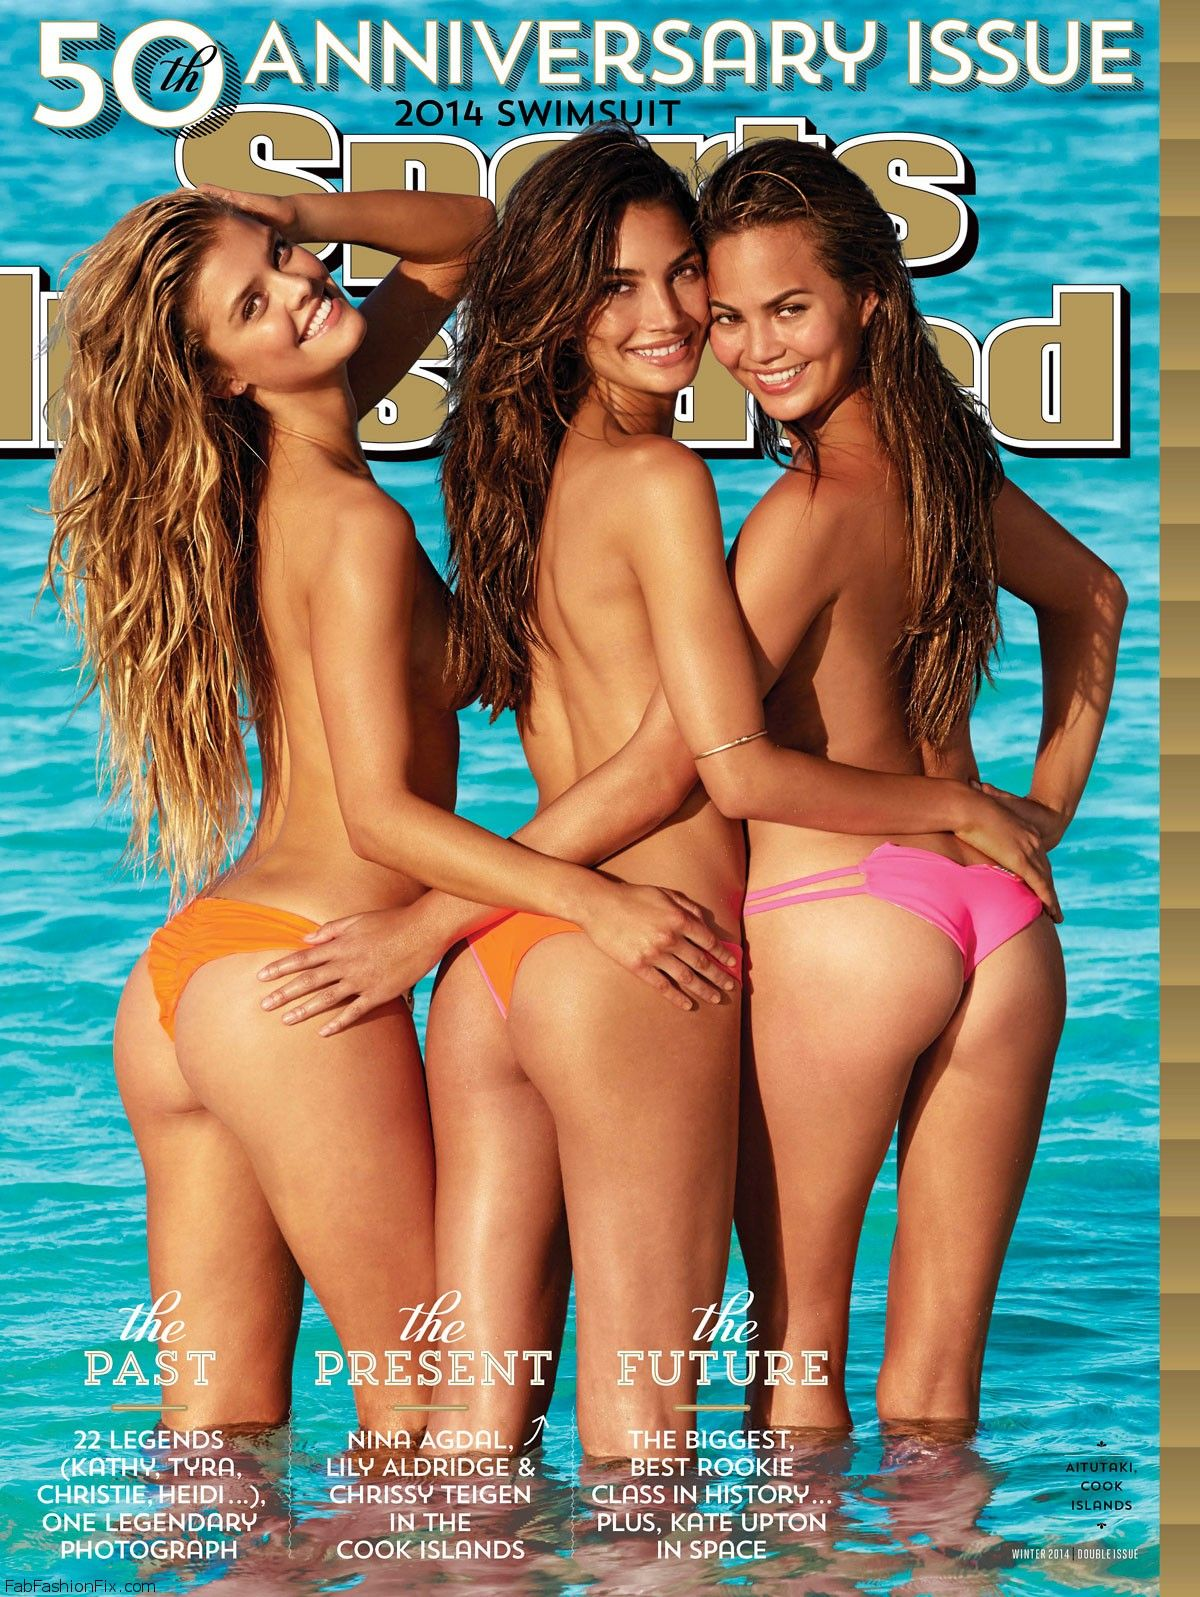 Swimsuit: 2014 Issue: Cook Islands Group - Lily Aldridge, Nina Agdal, Chrissy Teigen Beach/Rarotonga, Cook Islands, New Zealand